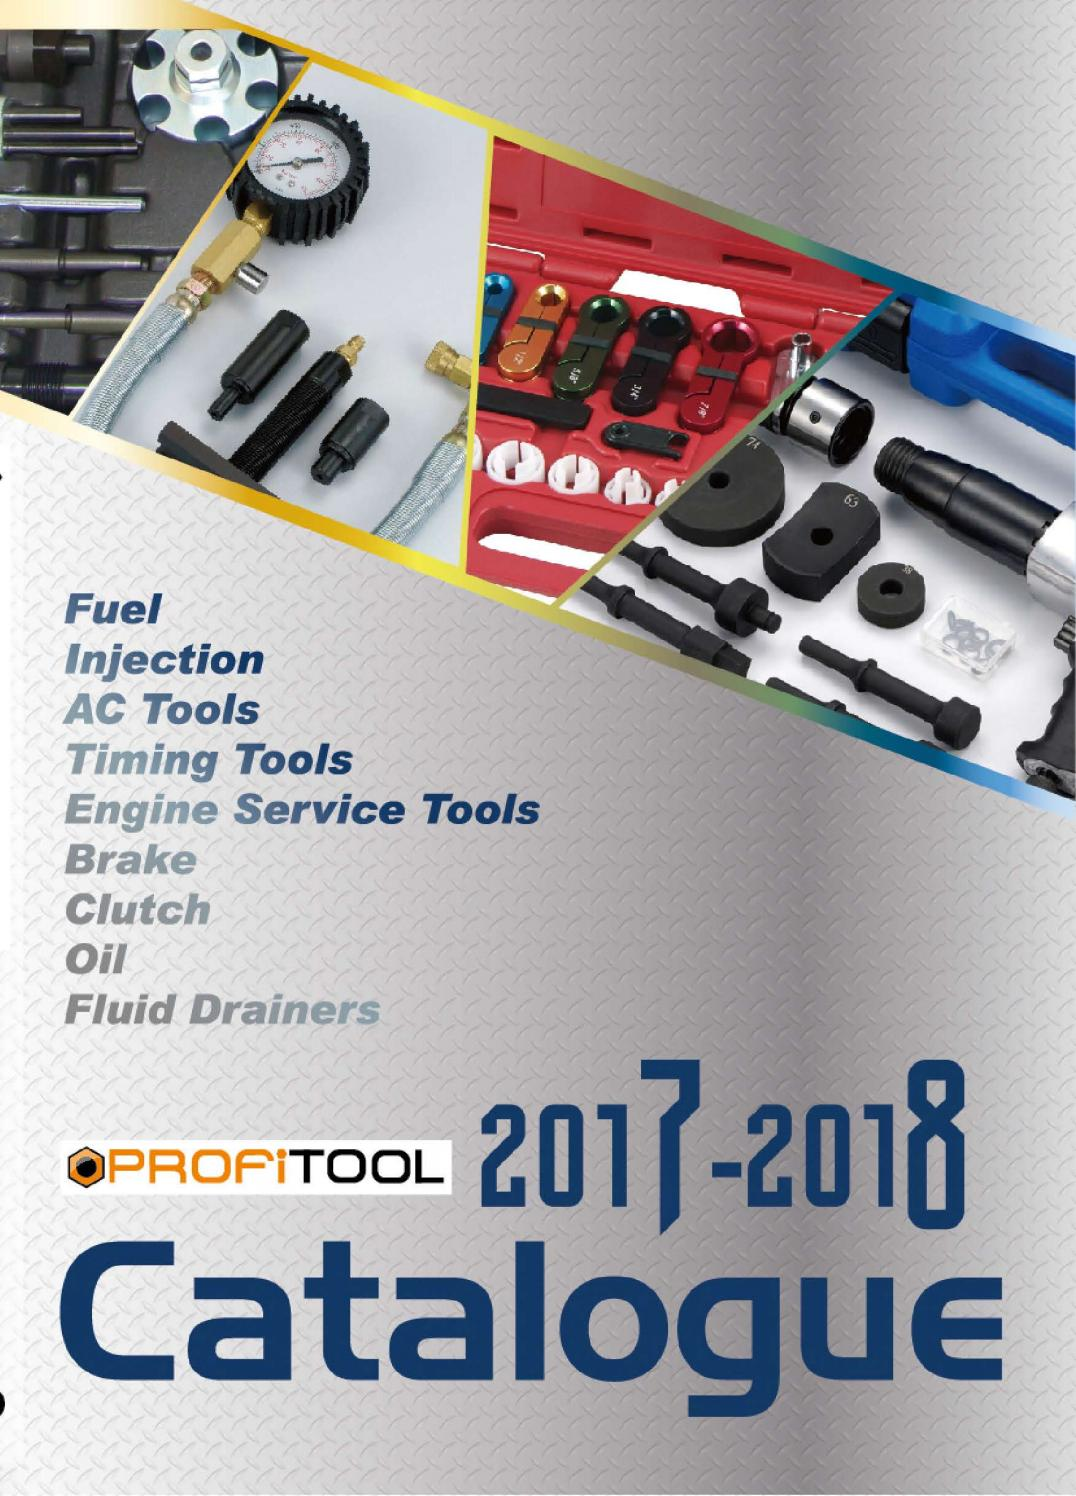 Profitool 2017 Catalogue By Intercars Sa Issuu New Circuit Board Ic U Type Insulation Tweezers Chip Extractor Removal